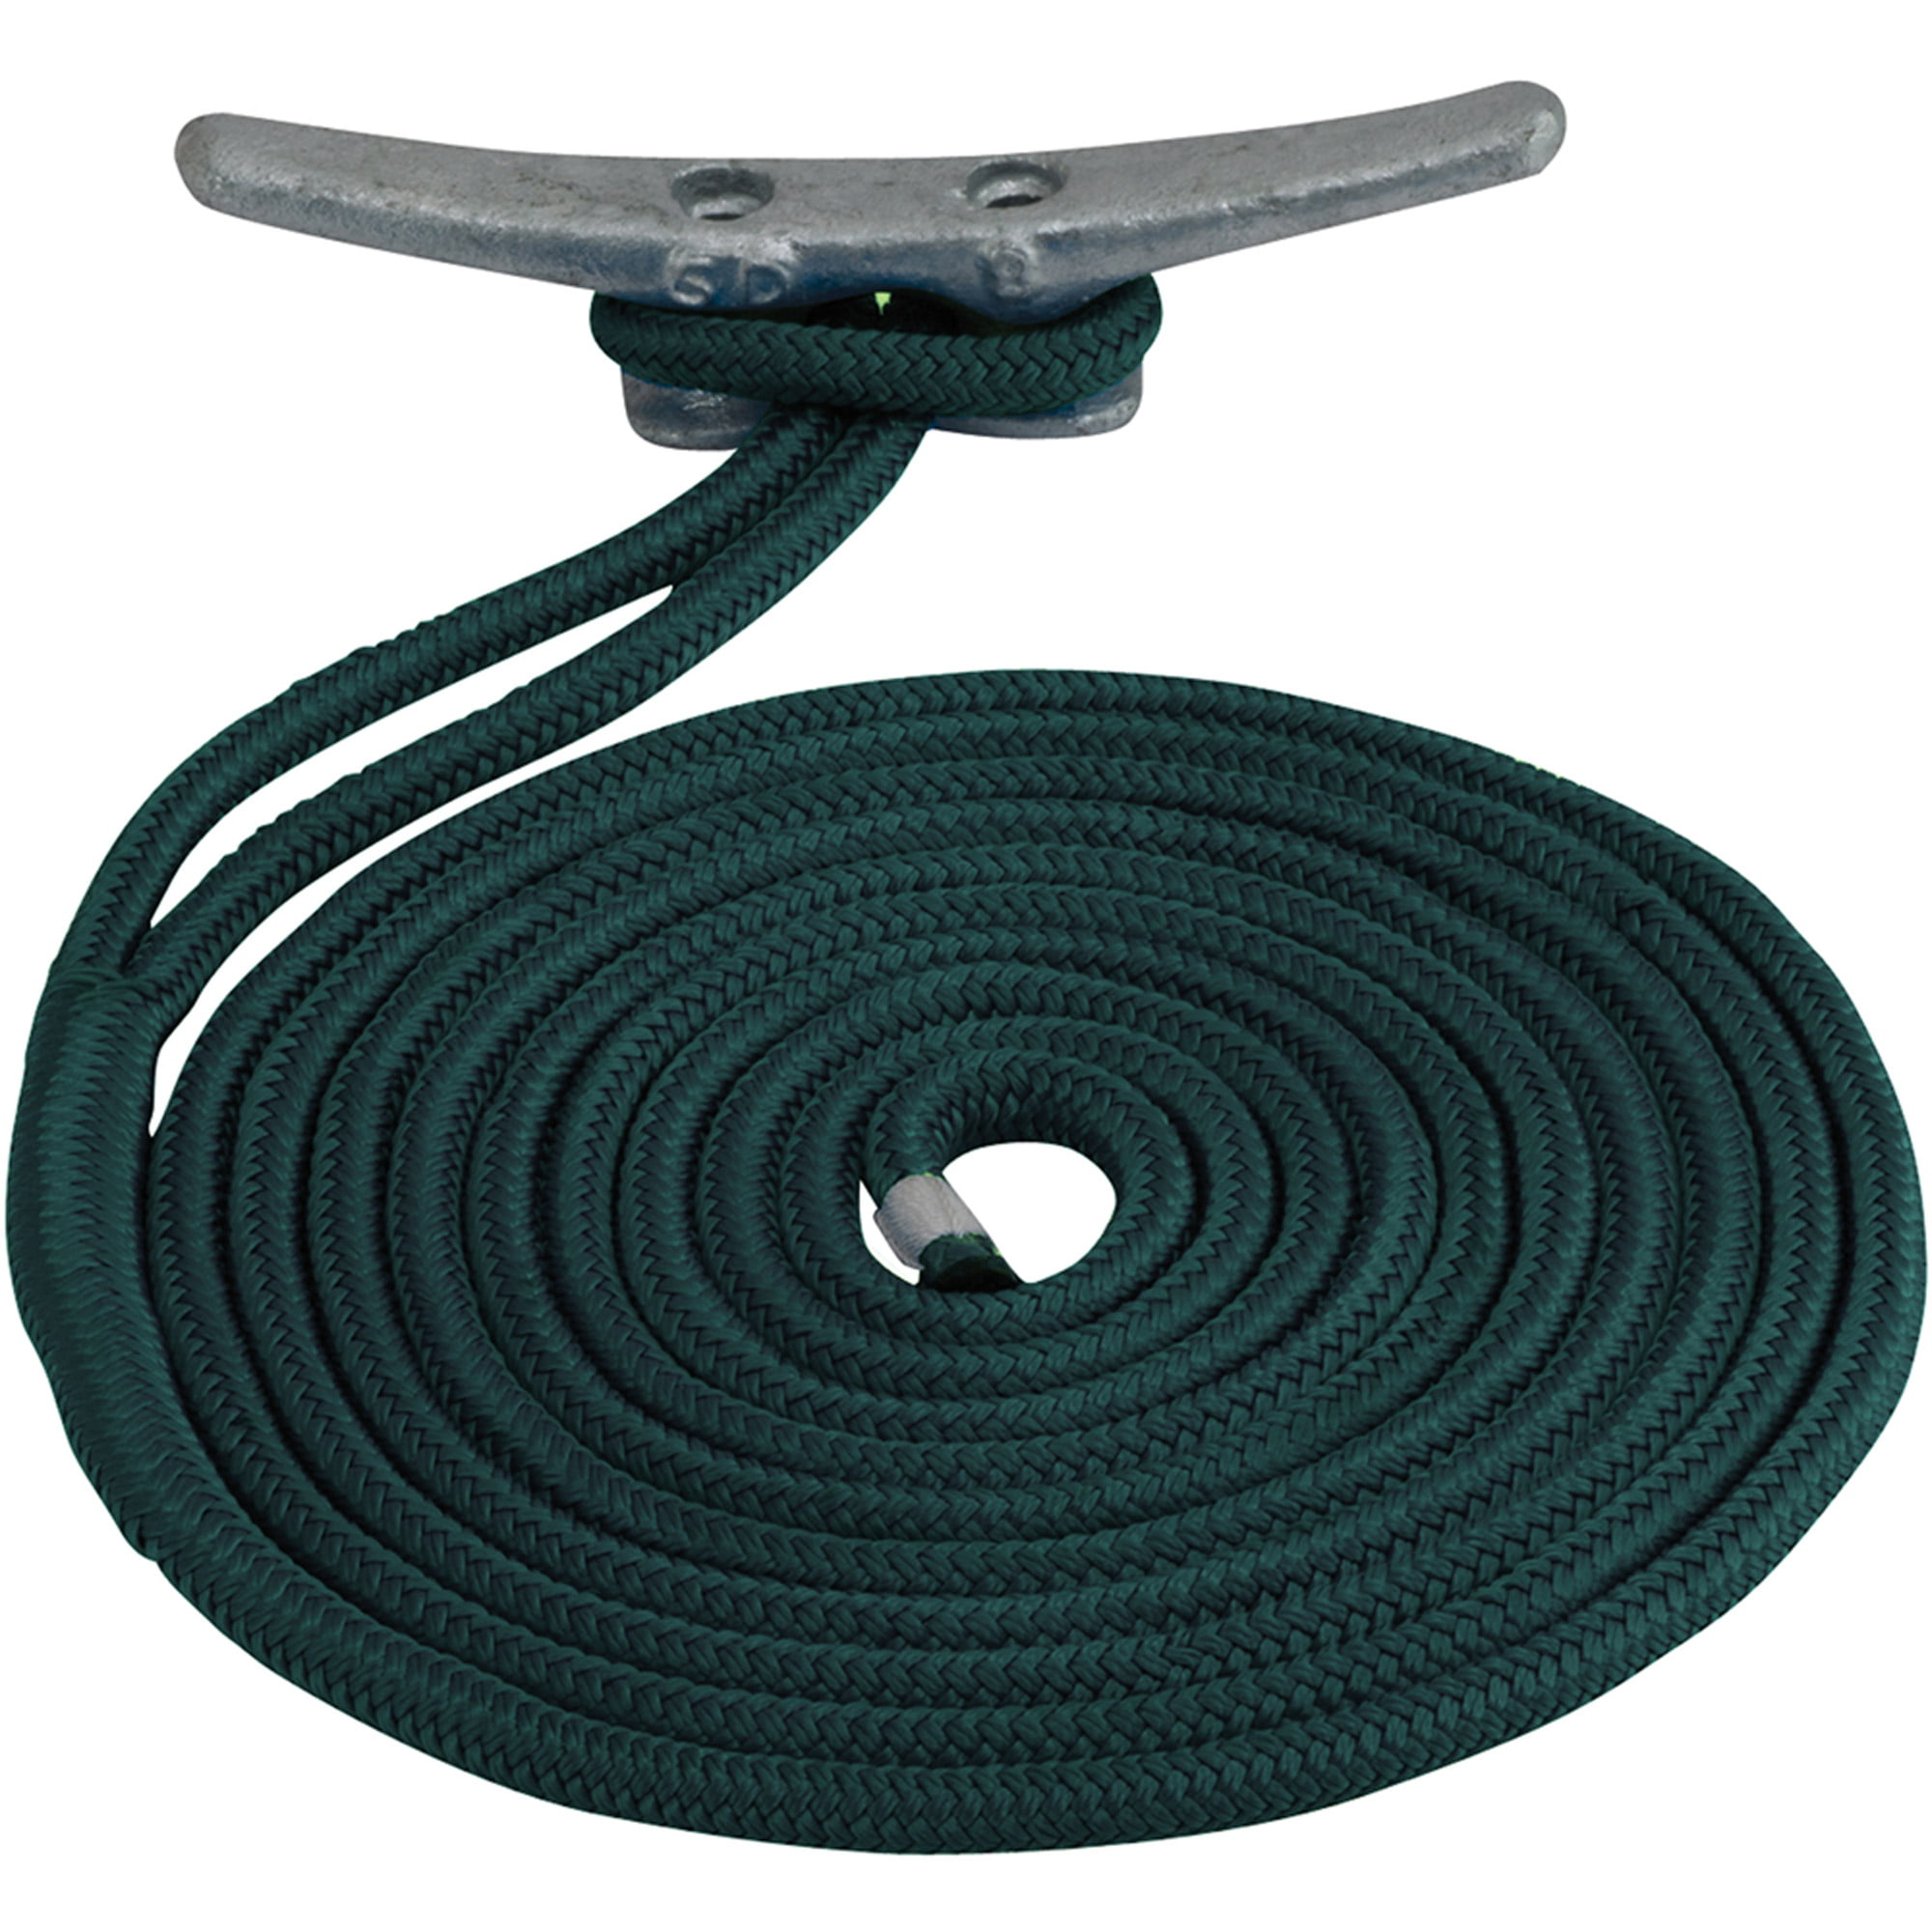 "Sea Dog Dock Line, Double Braided Nylon, 3 8"" x 20', Teal by Sea-Dog Line"